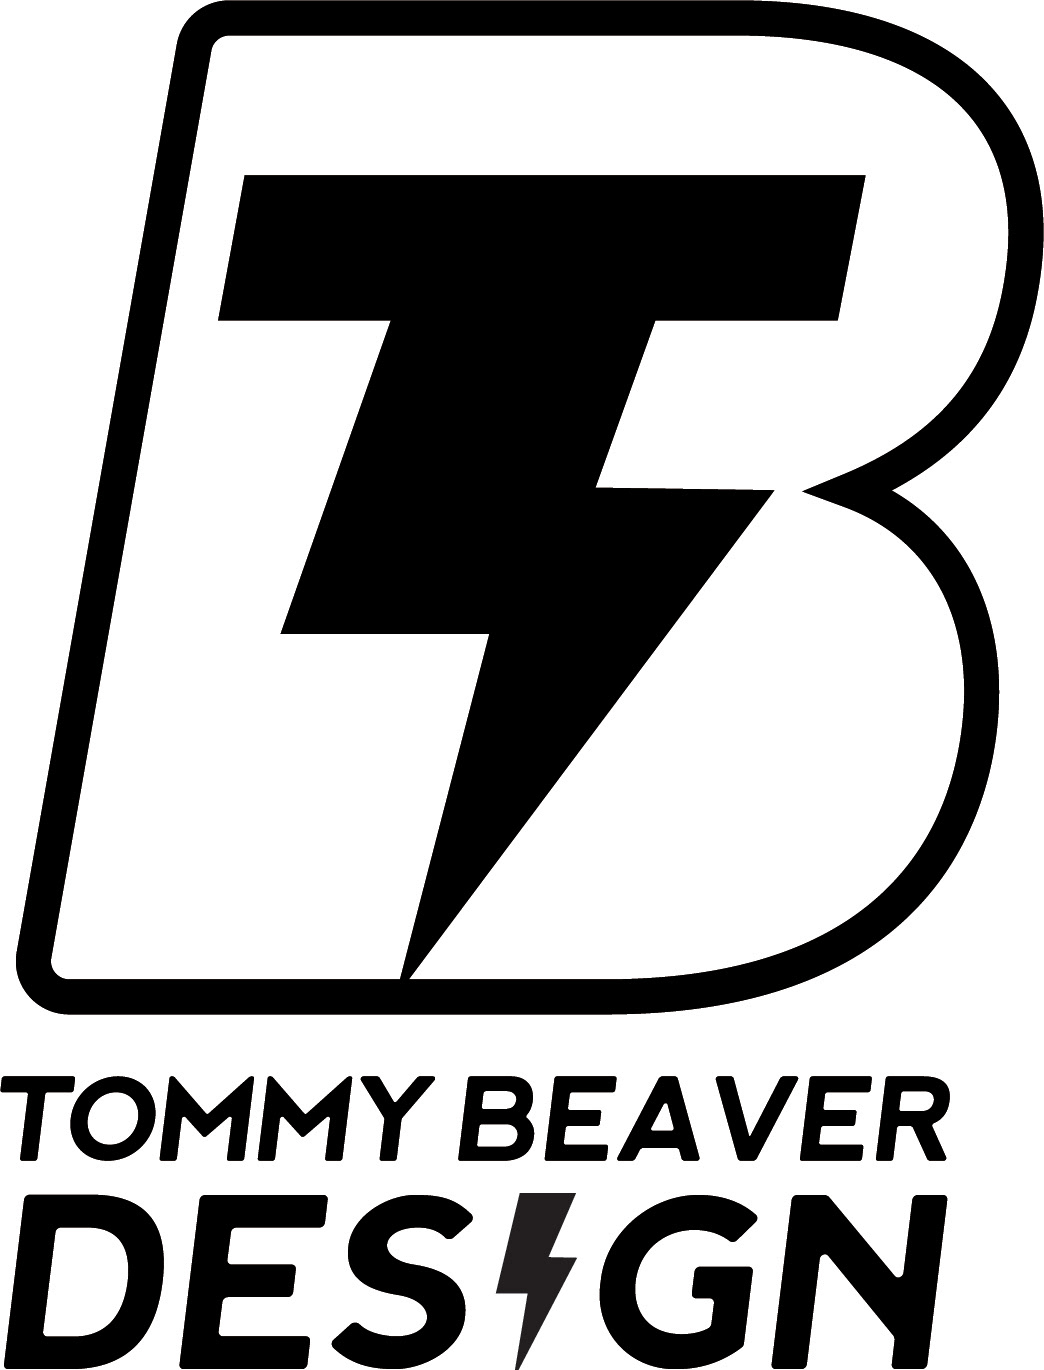 Tommy Beaver